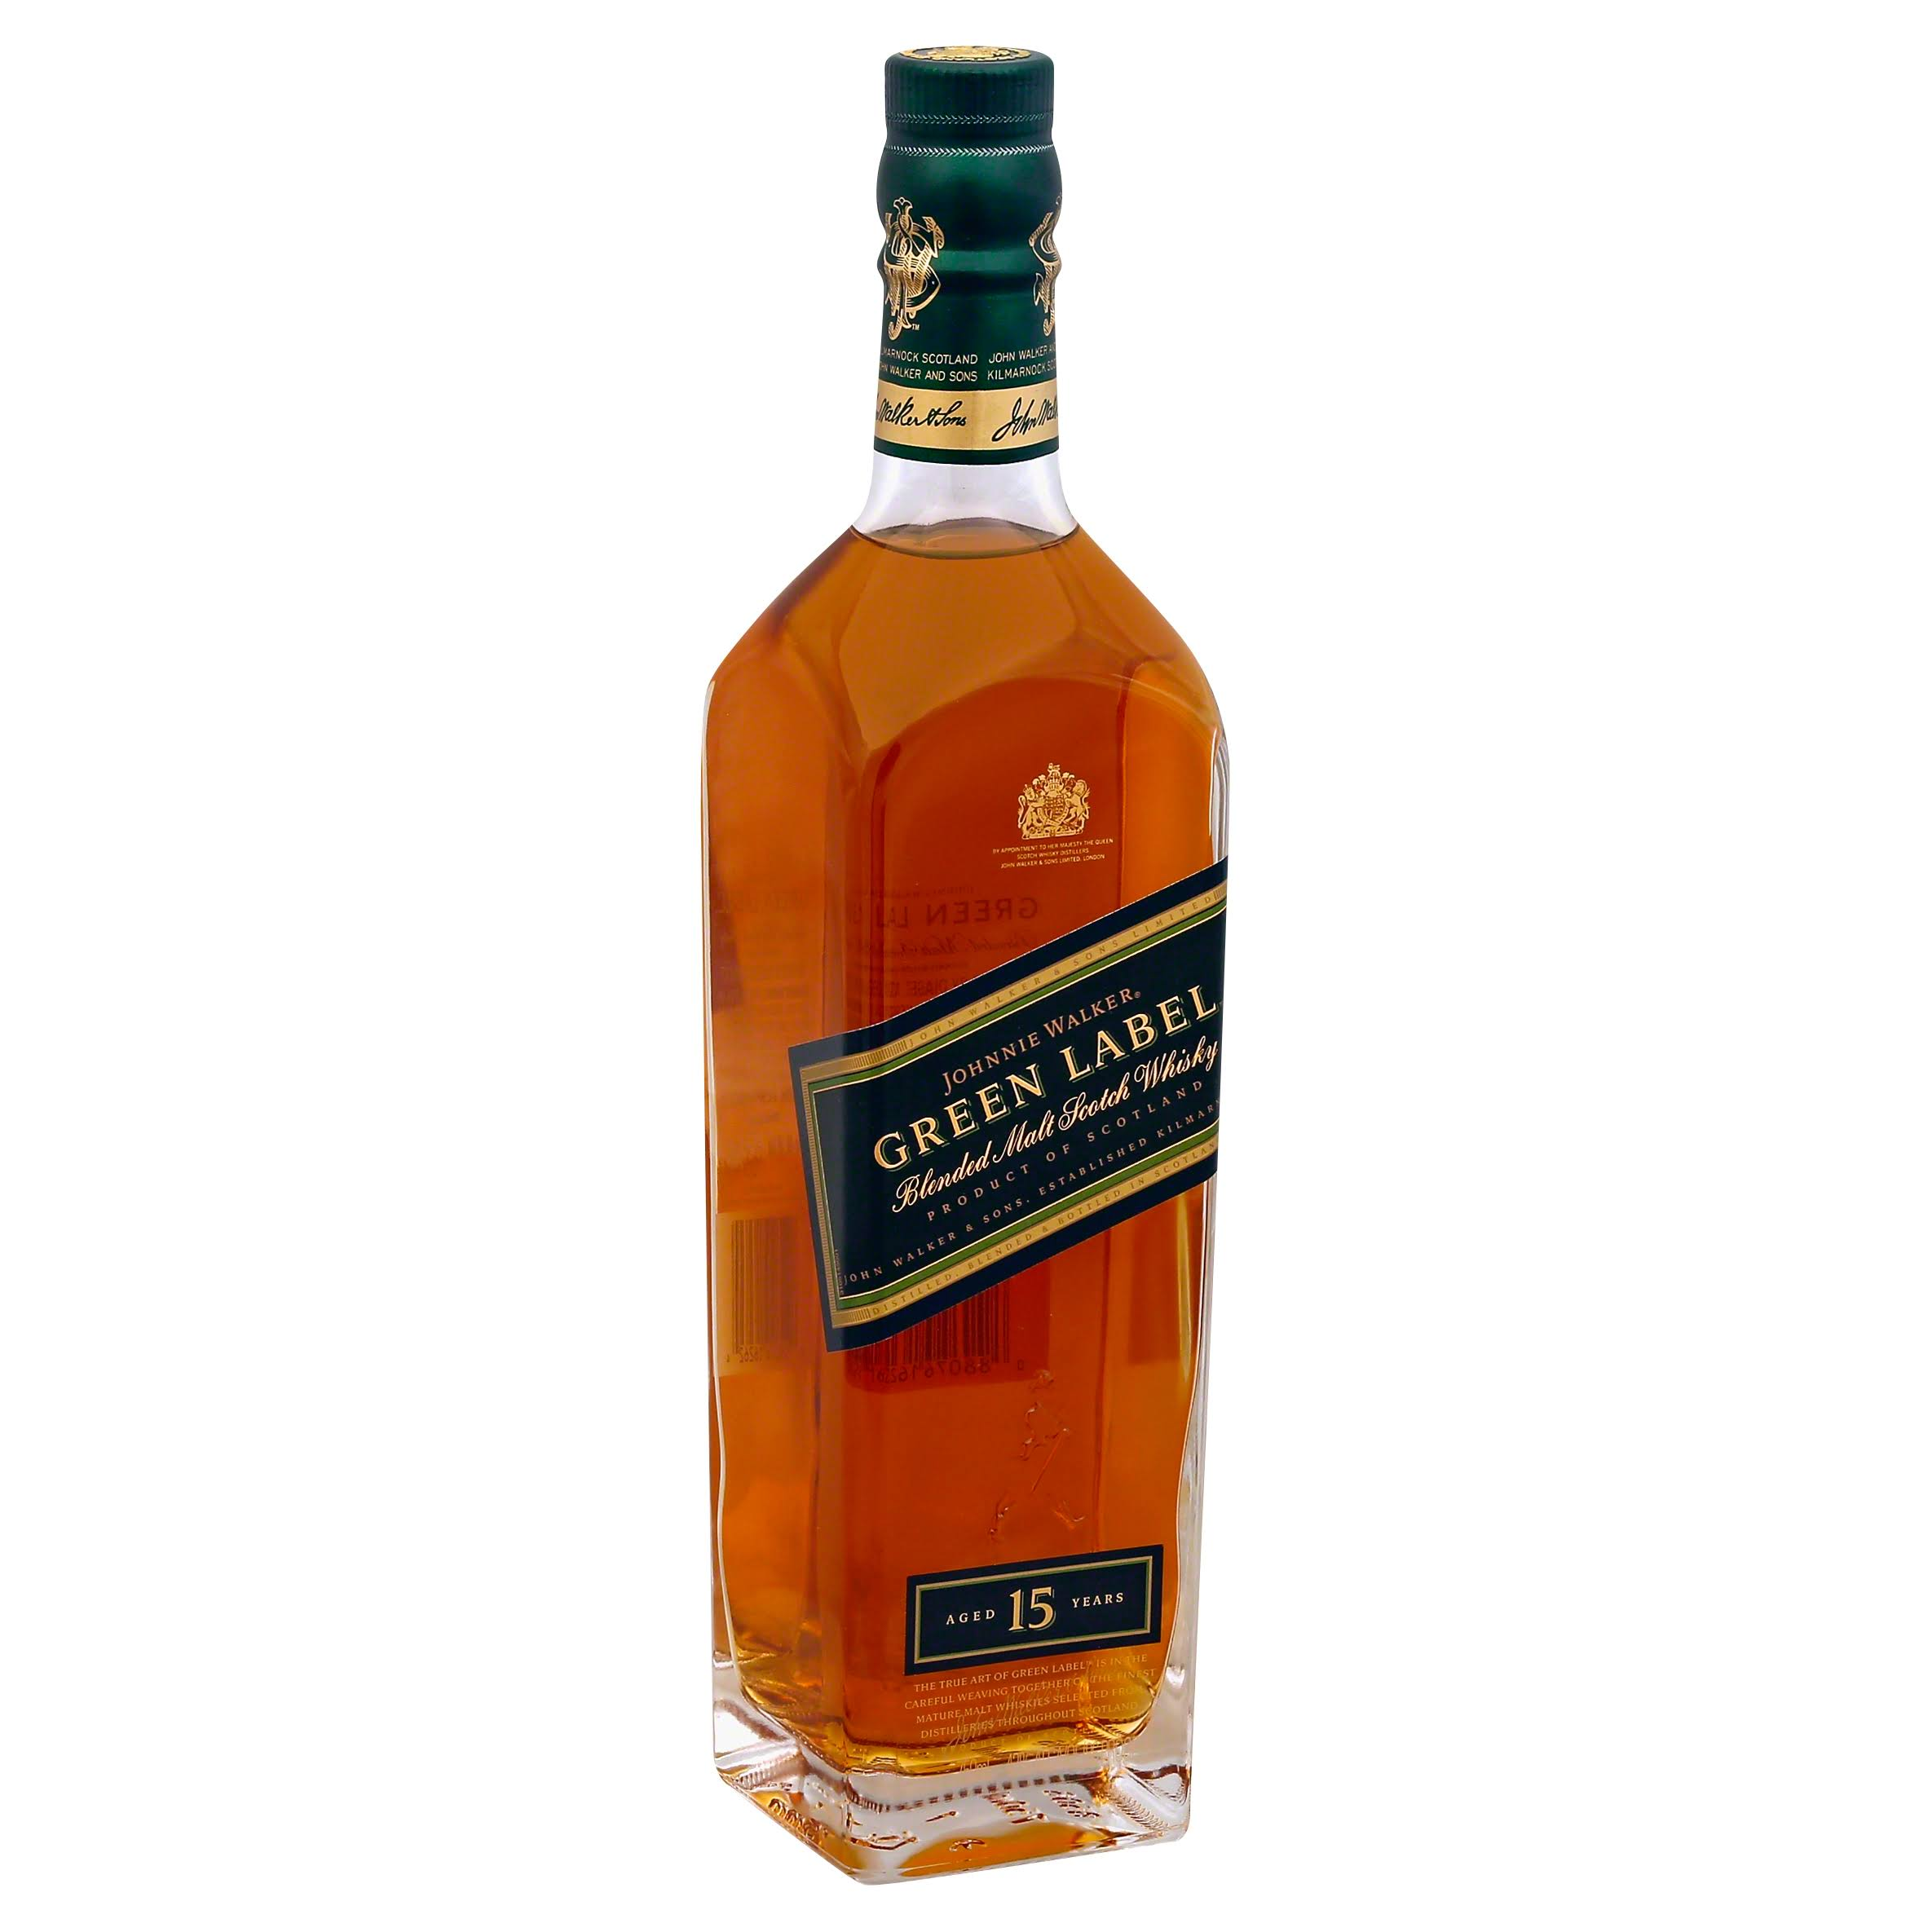 Johnnie Walker Scotch - Green Label, 750ml